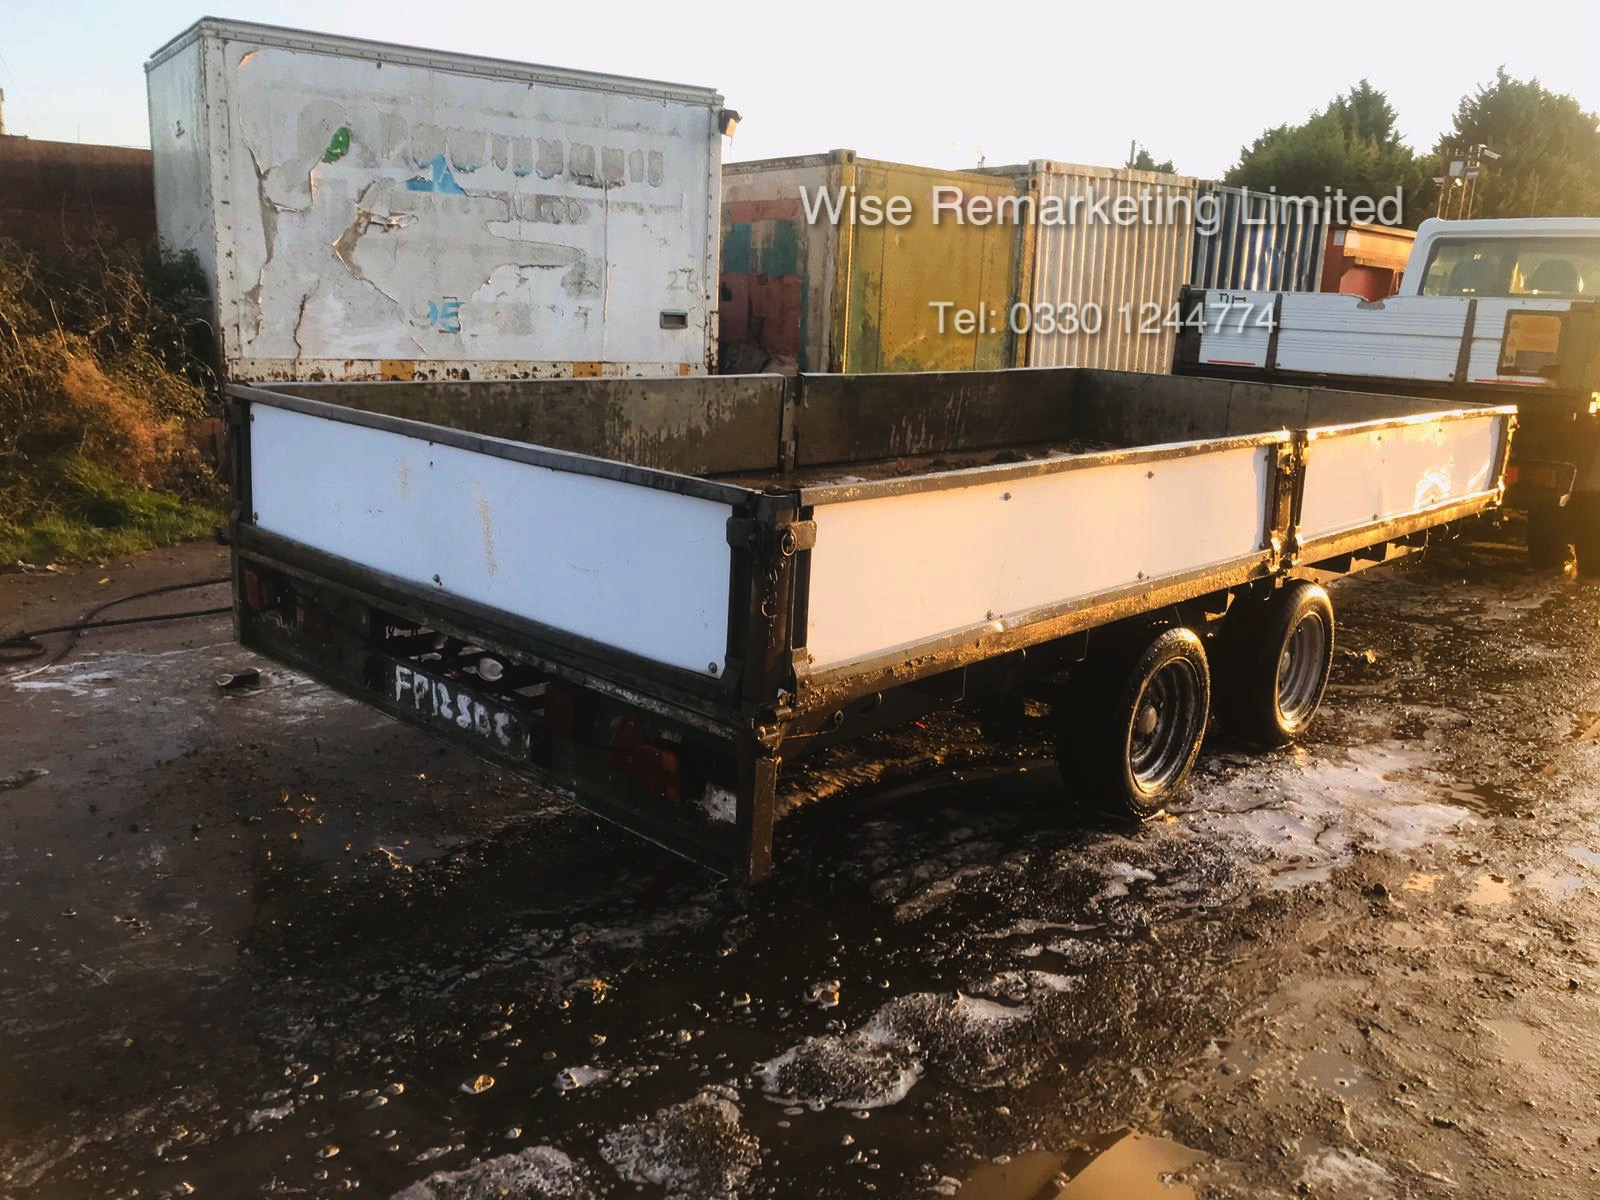 Ifor Williams 14ft Double Wheel Dropside Trailer - 2004/5 Year - Image 3 of 6